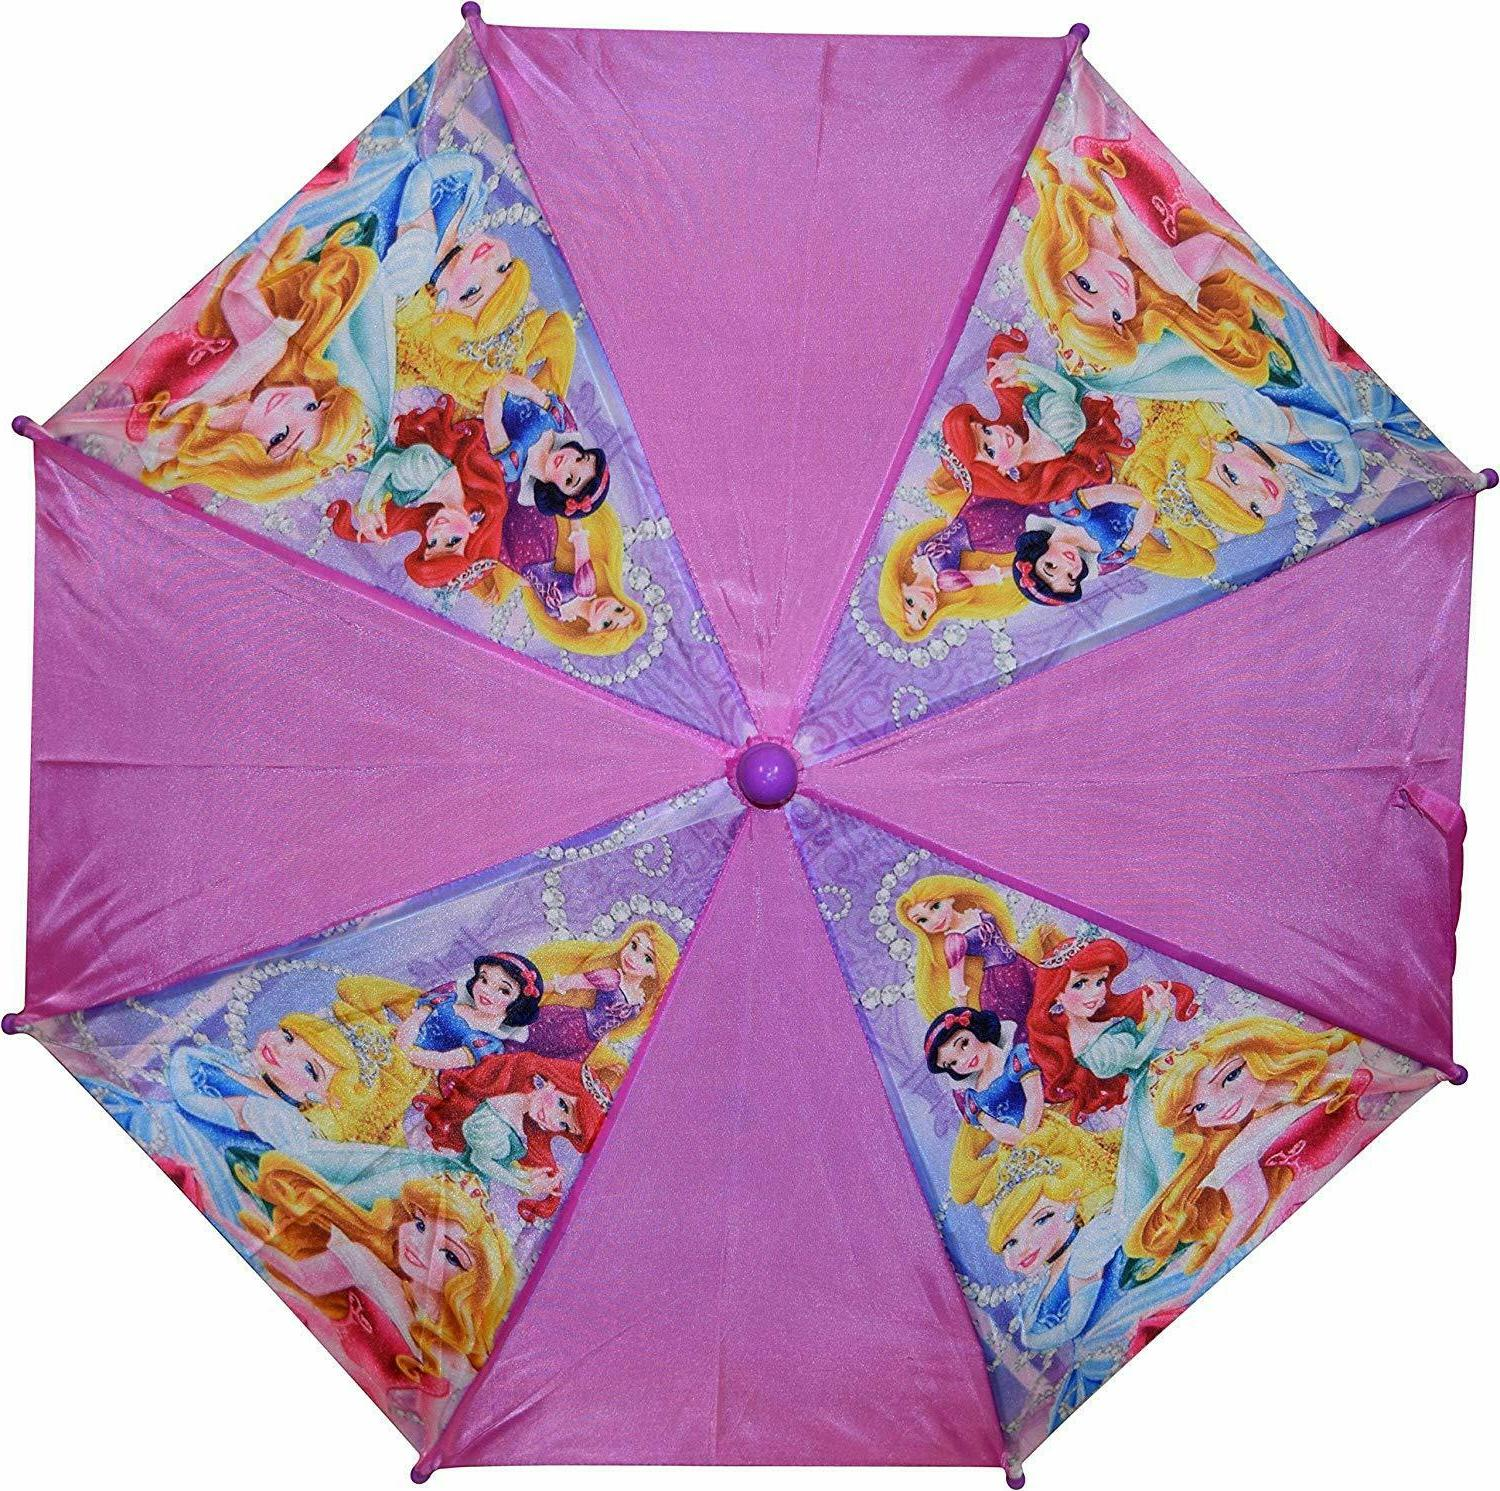 Disney Little Girls Umbrella Cute School Kids